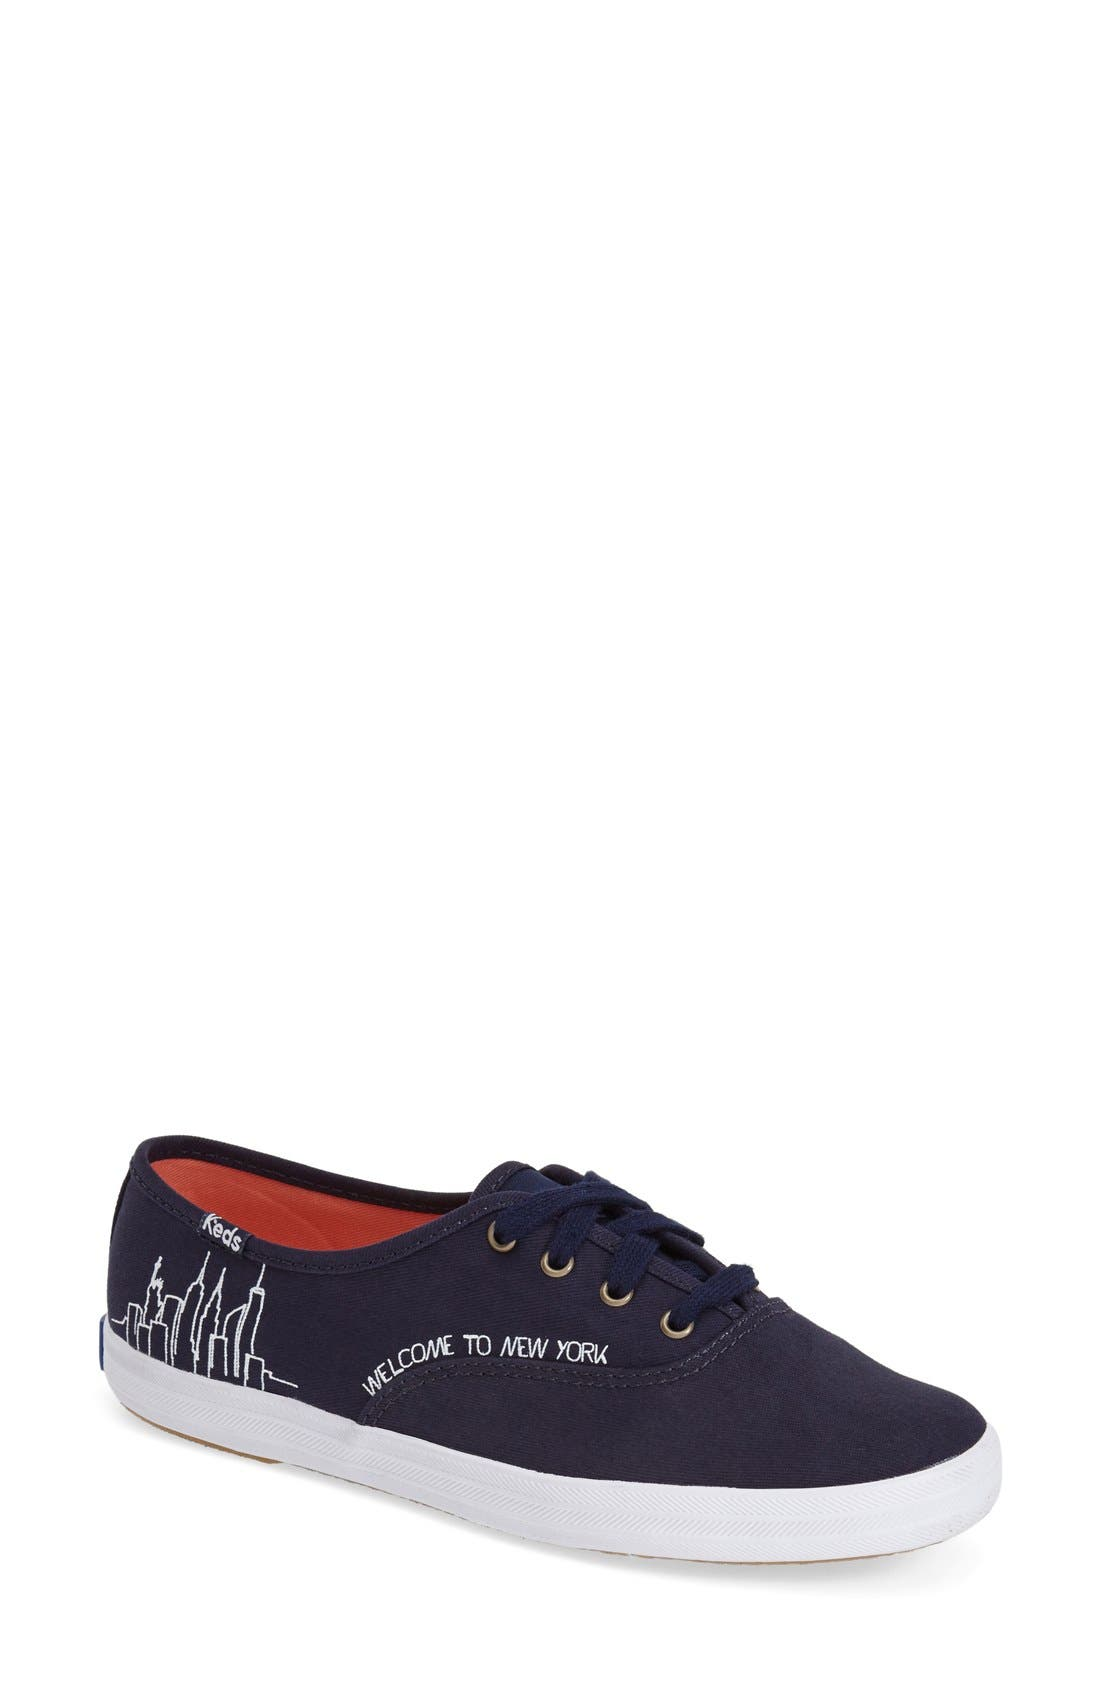 KEDS<SUP>®</SUP> Taylor Swift 'Champion - NYC' Sneaker, Main, color, 400